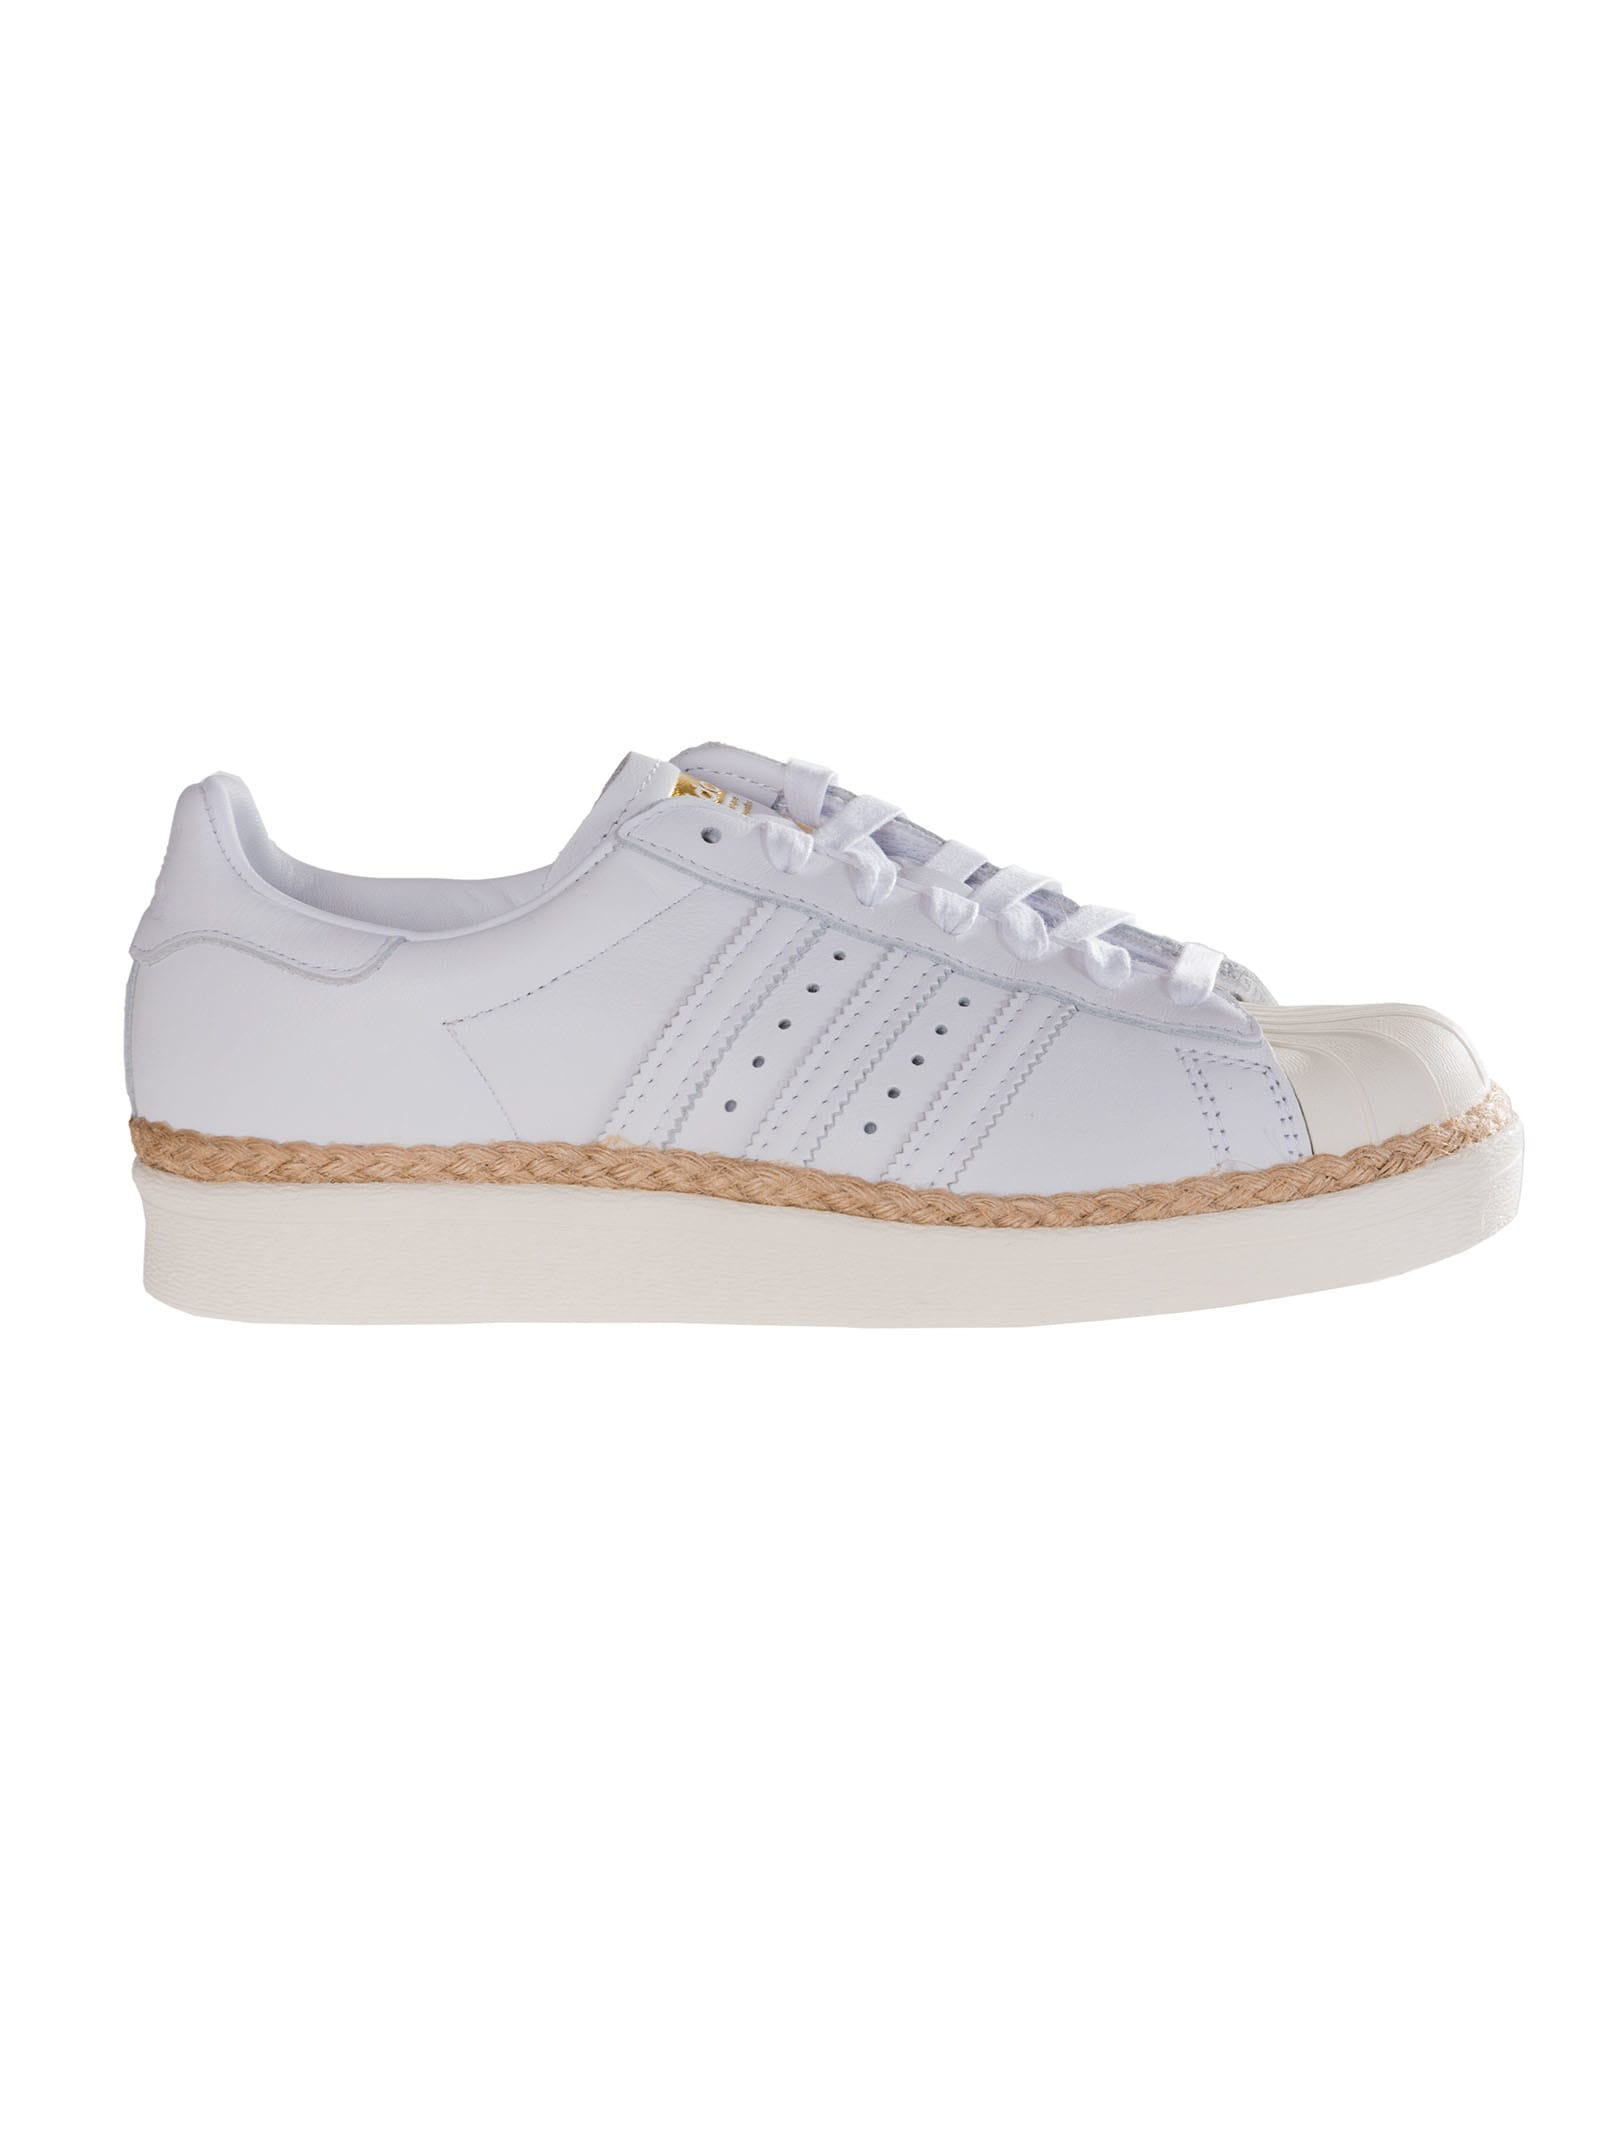 quality design a12e2 2354a Best price on the market at italist | Adidas Adidas Superstar 80s New Bold  Sneakers